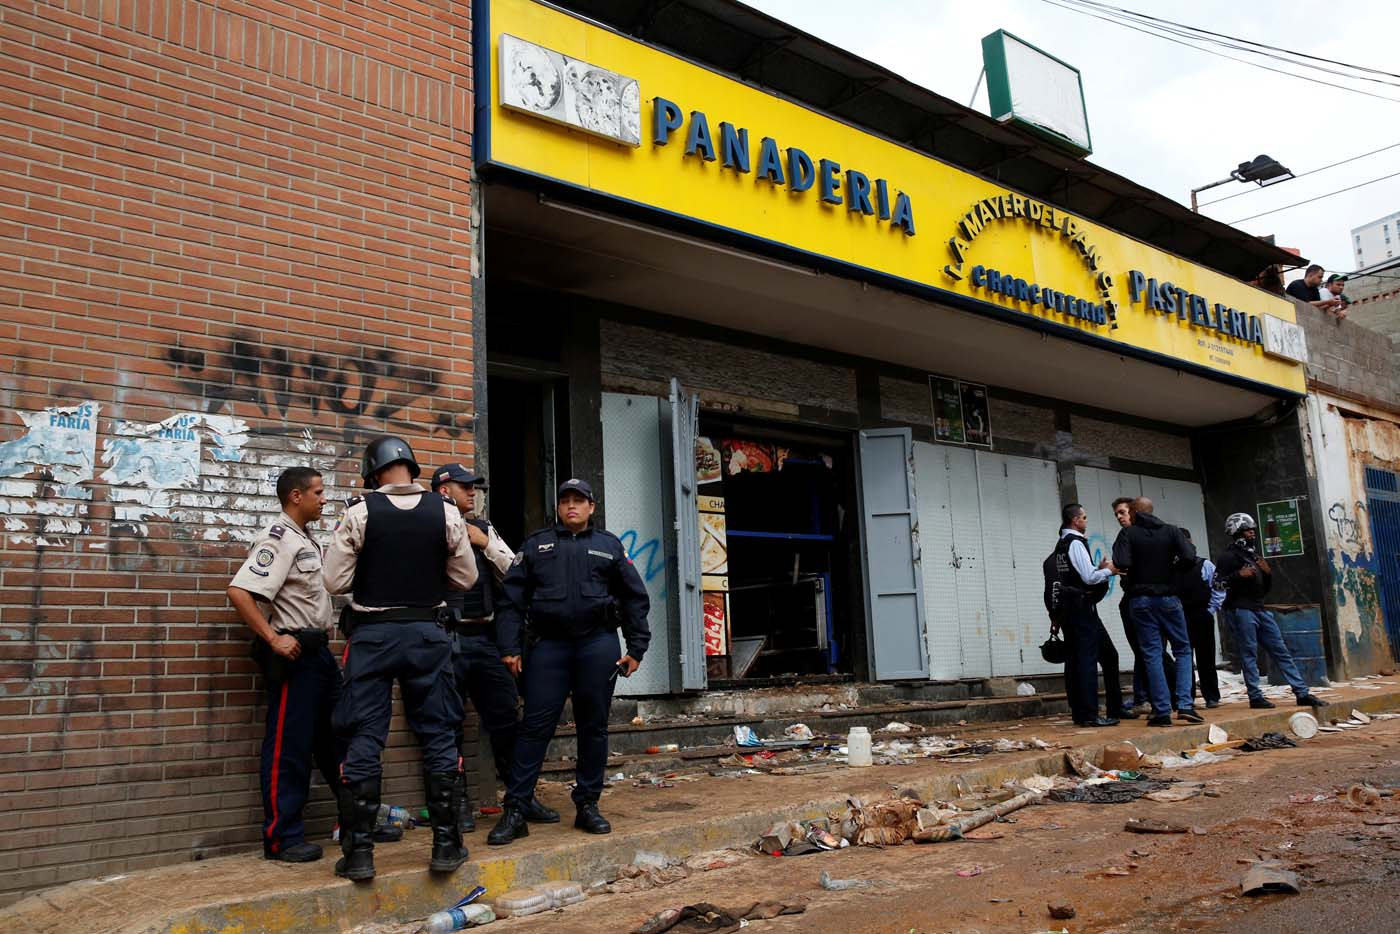 Police officers and criminal investigators stand in front of a bakery, after it was looted in Caracas, Venezuela April 21, 2017. REUTERS/Carlos Garcia Rawlins